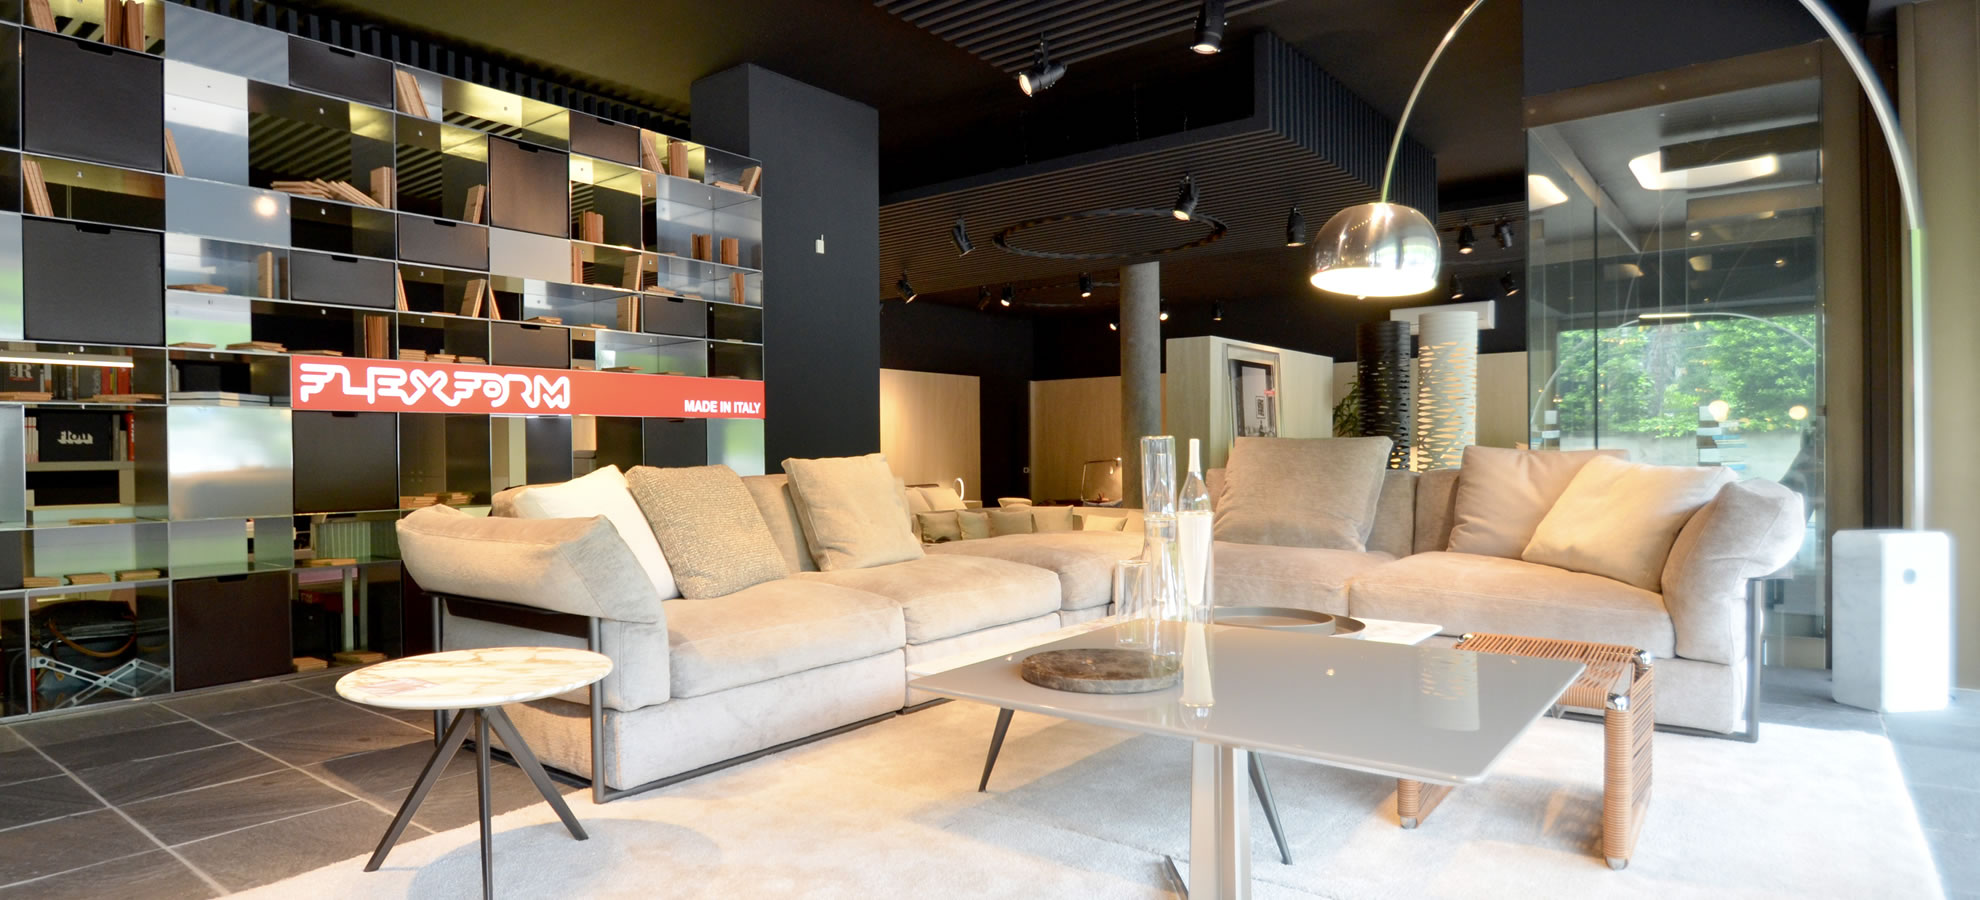 Showroom Flexform Como